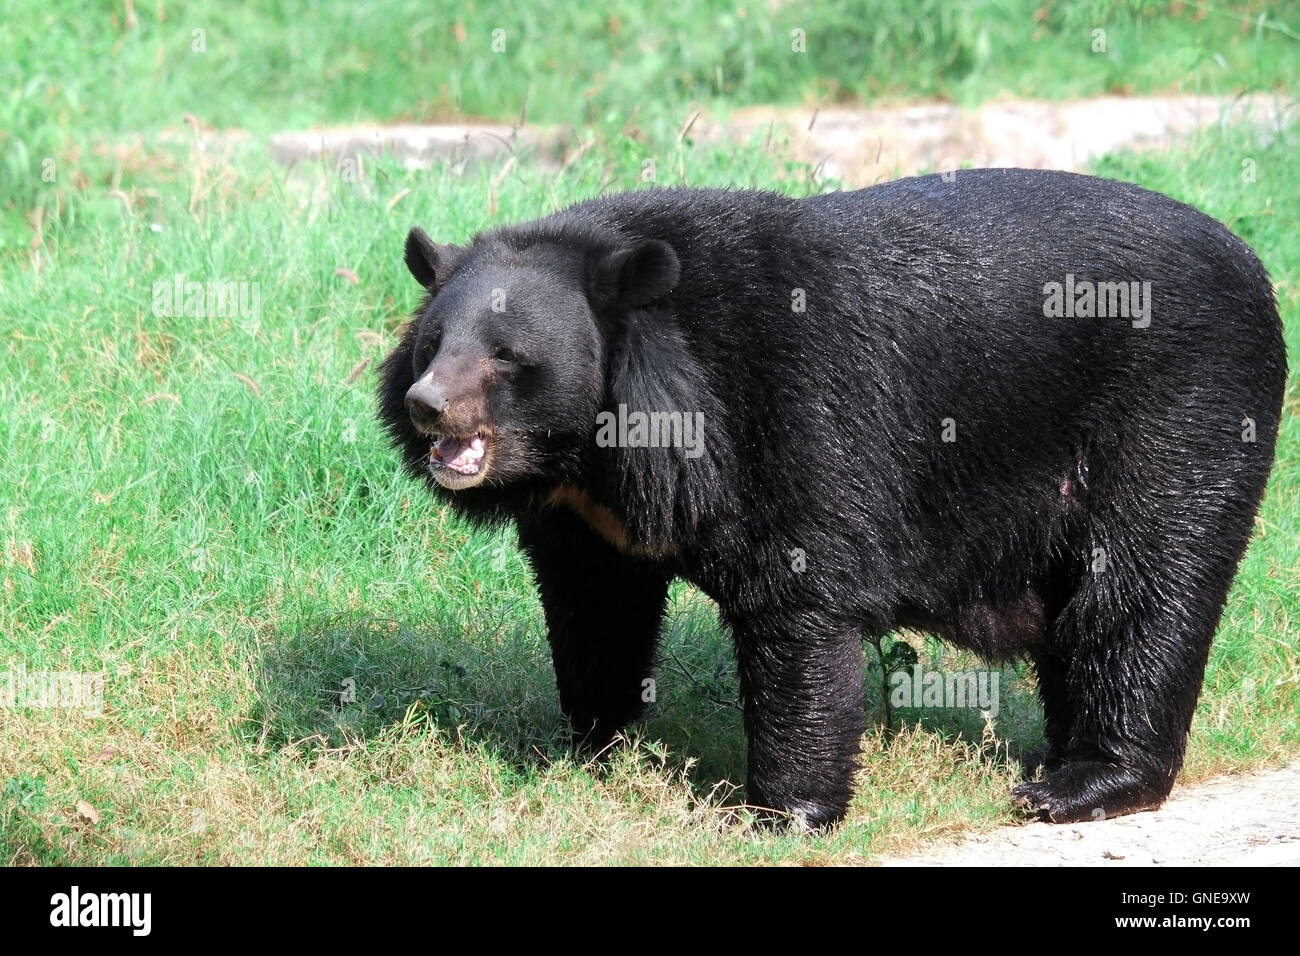 Asian or the Himalayan Black Bear (Ursus thibetanus or Selenarctos thibetanus) at National Zoological Park - Stock Image